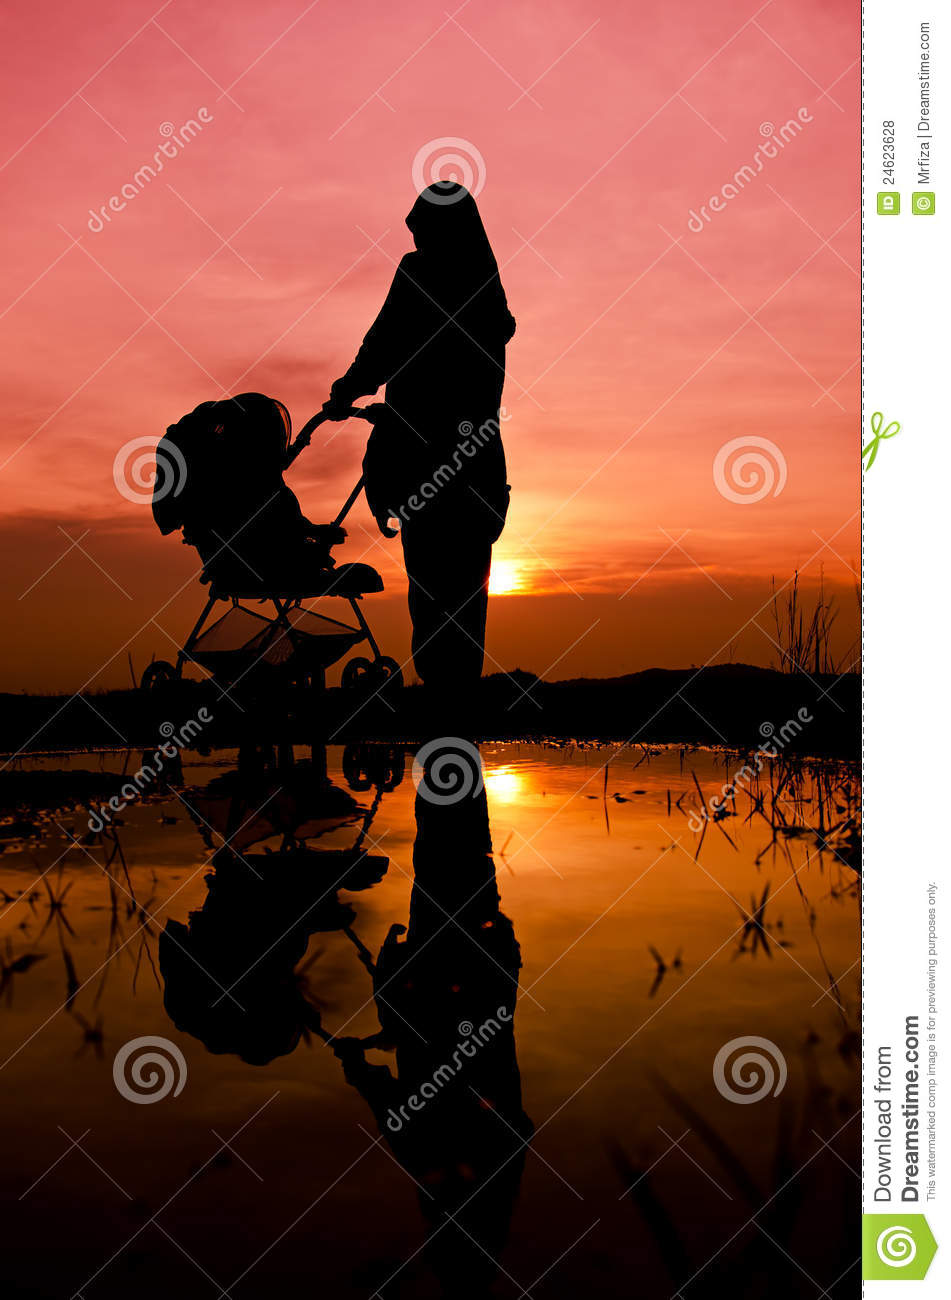 Muslim Mother And Baby Stock Photo. Image Of Daughter